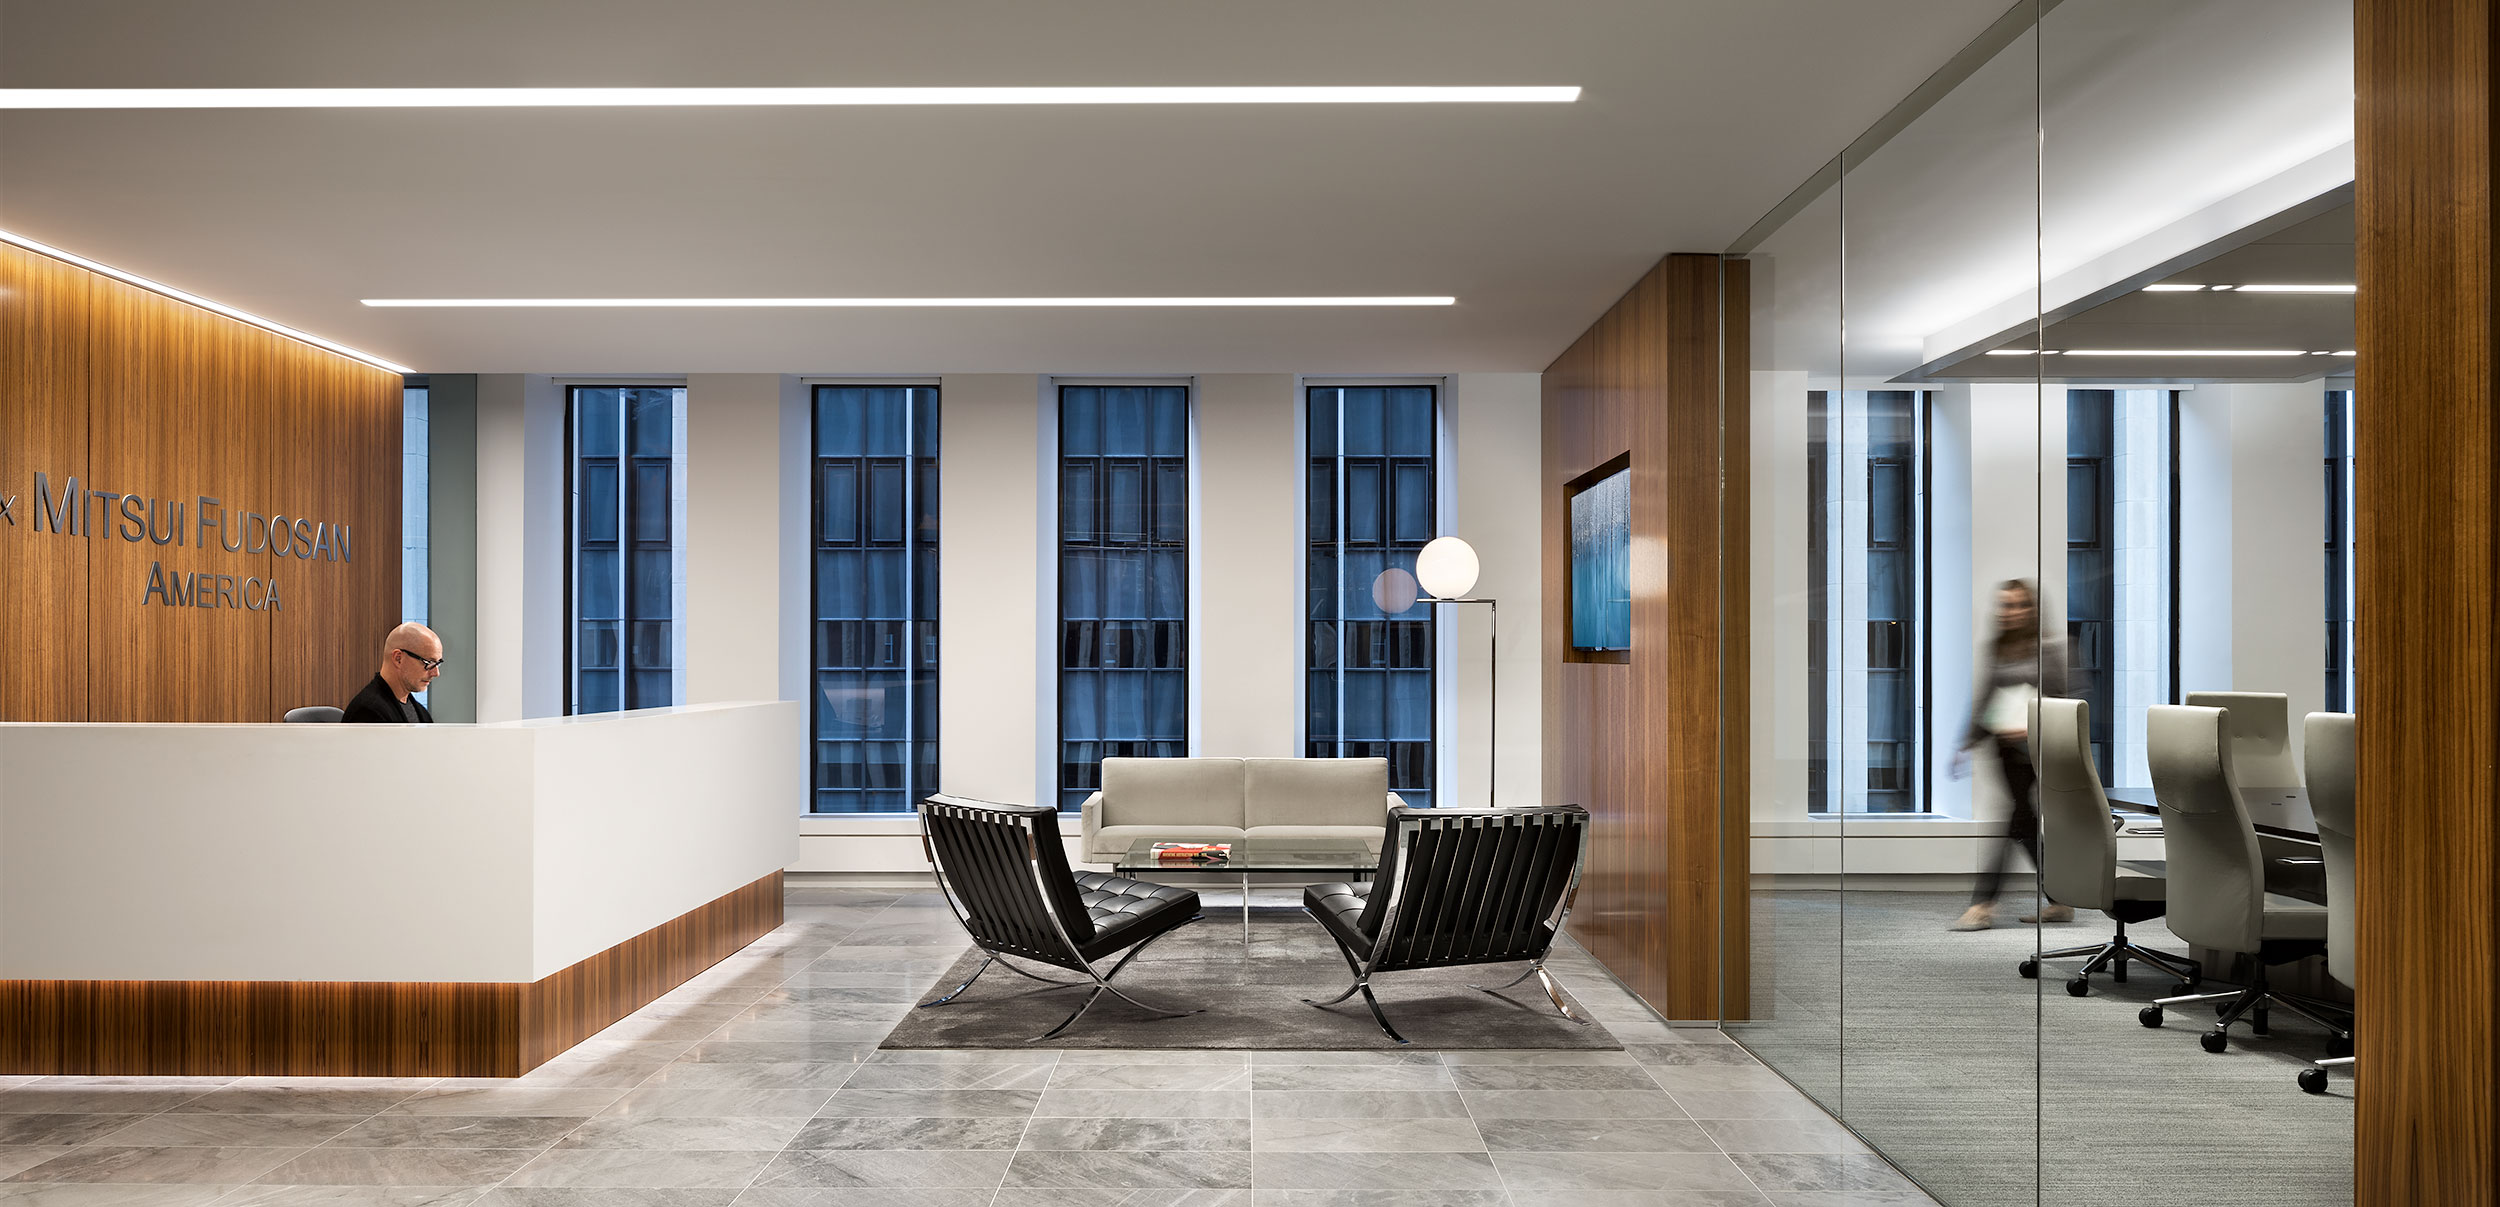 Mitsui Lobby & Conference,  New York City, Interior Design